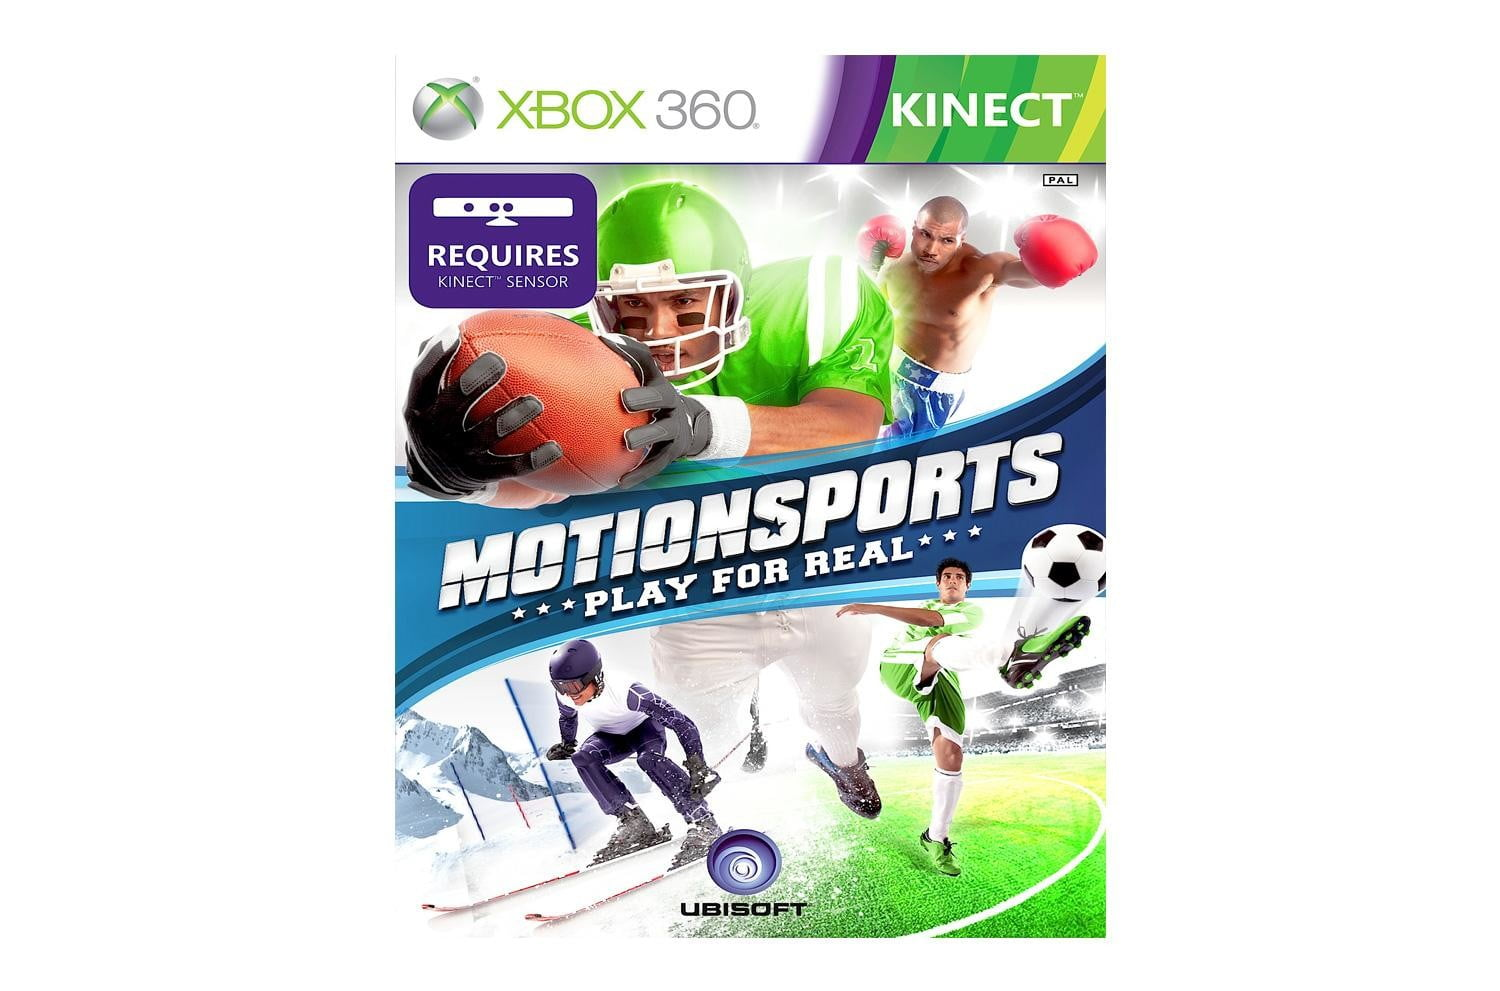 MotionSports-cover-art